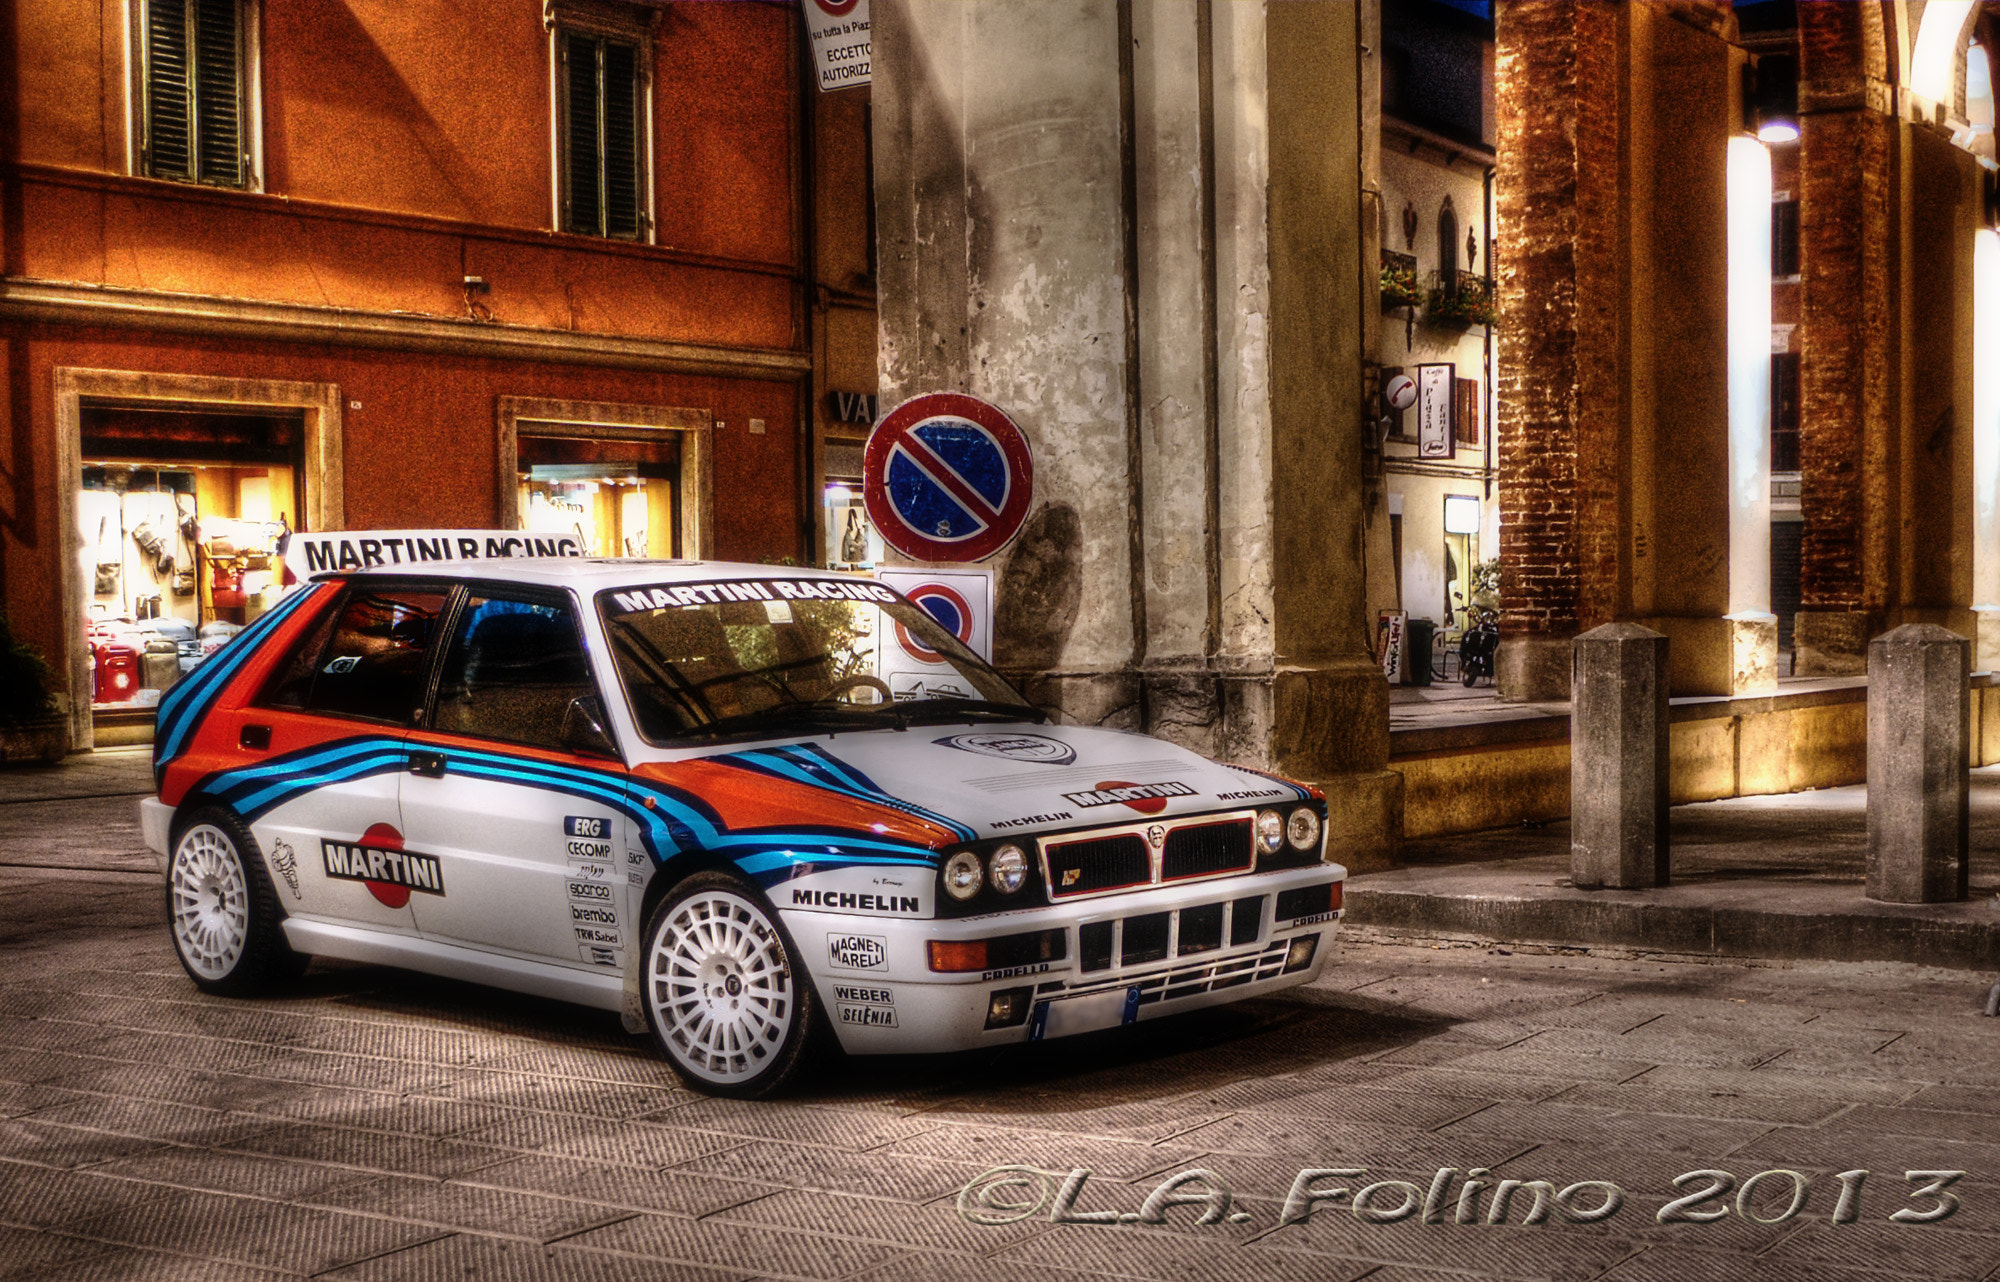 Photograph Delta HF integrale by Luca A. Folino on 500px